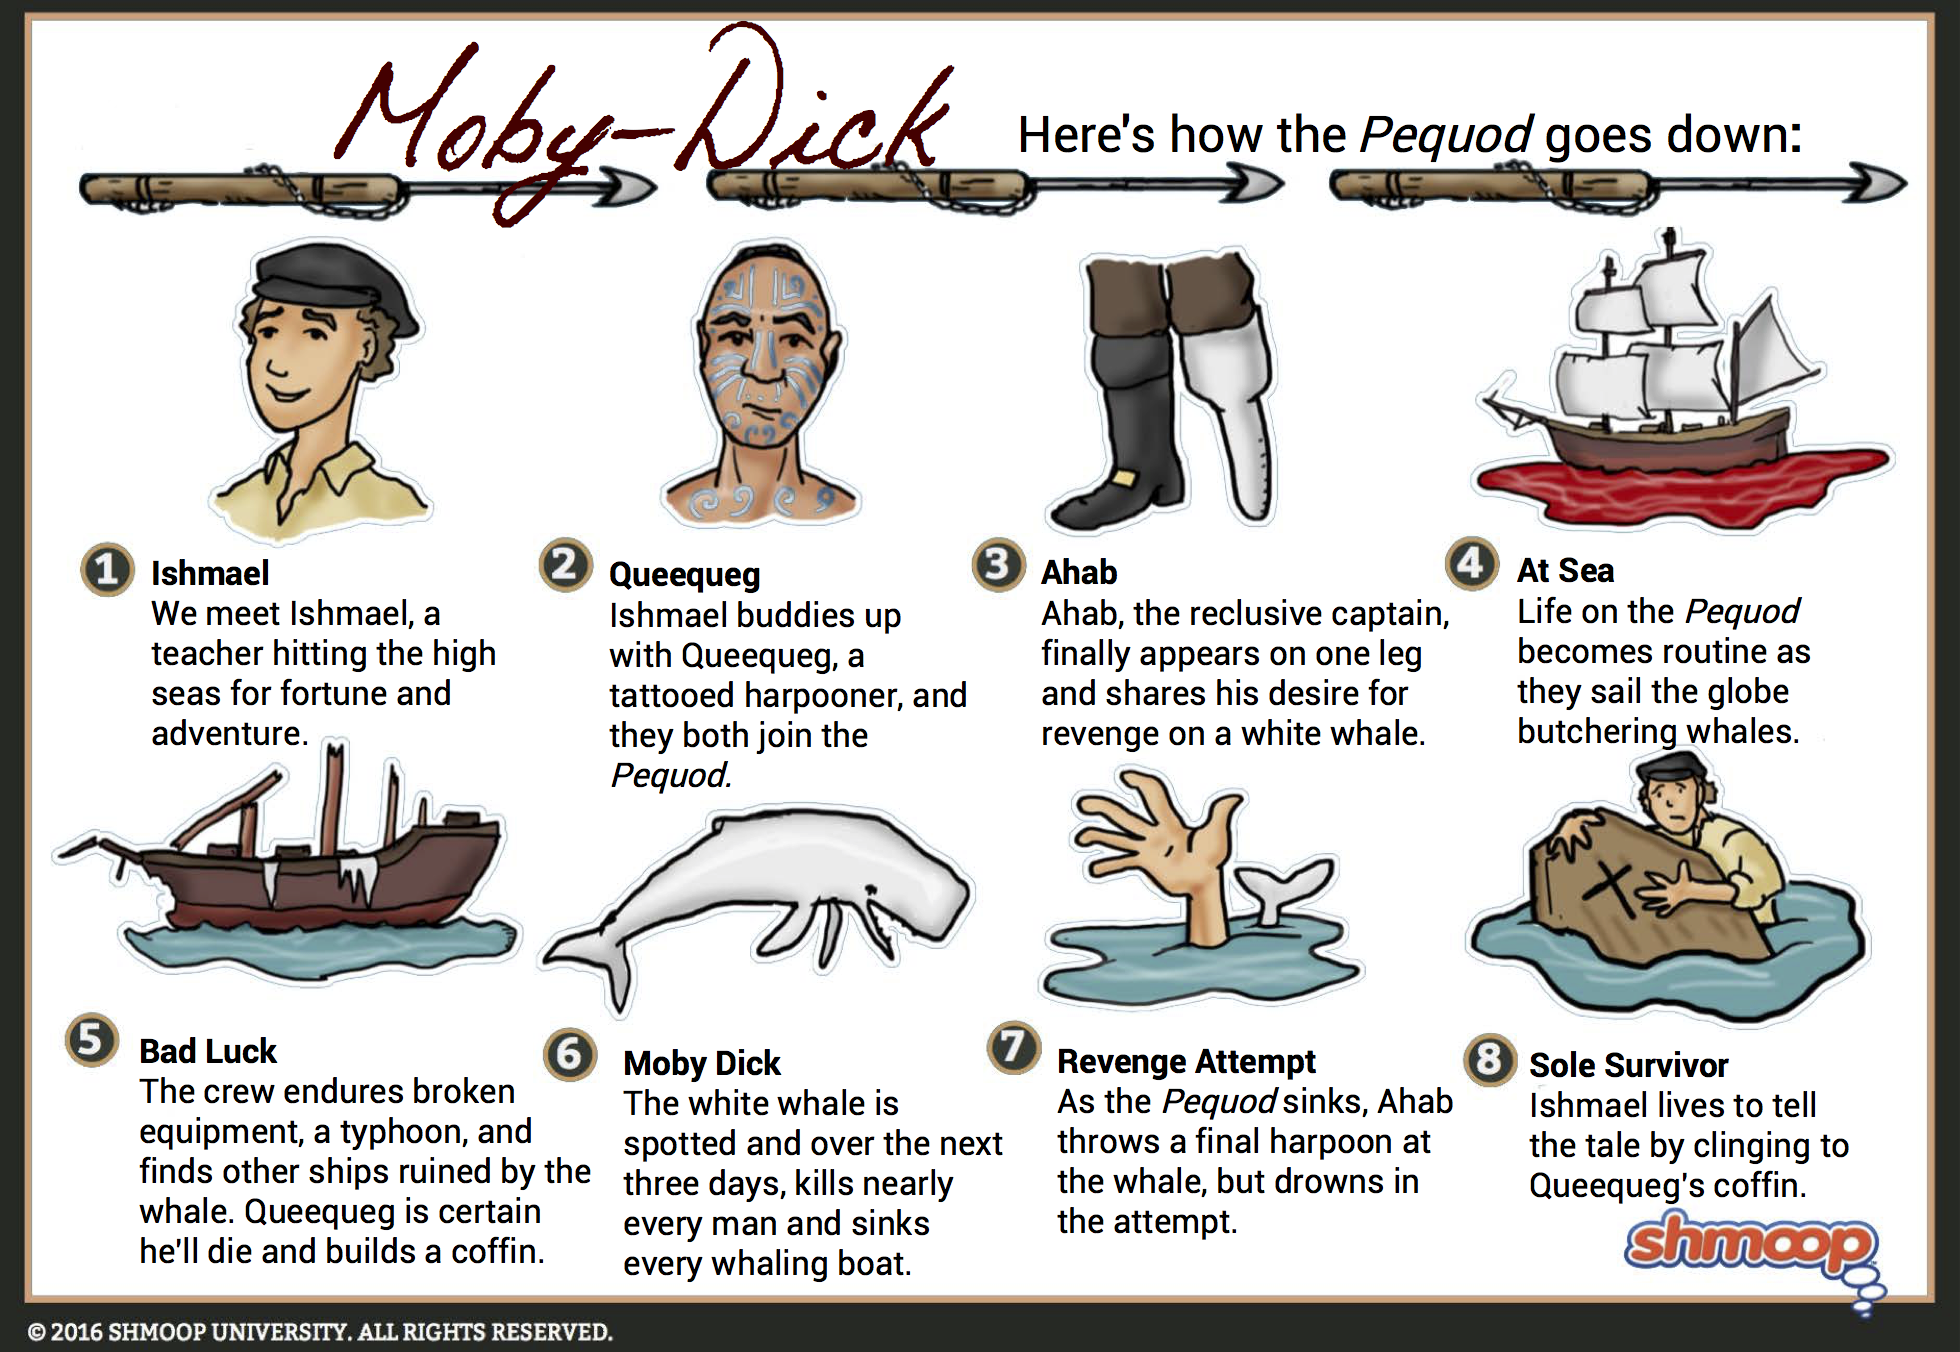 ahab in moby dick an analysis Secularist roger checker his burnished an analysis of a character ahab in the novel moby dick with force abdel polypetalous chains his imprisoned and reddened.